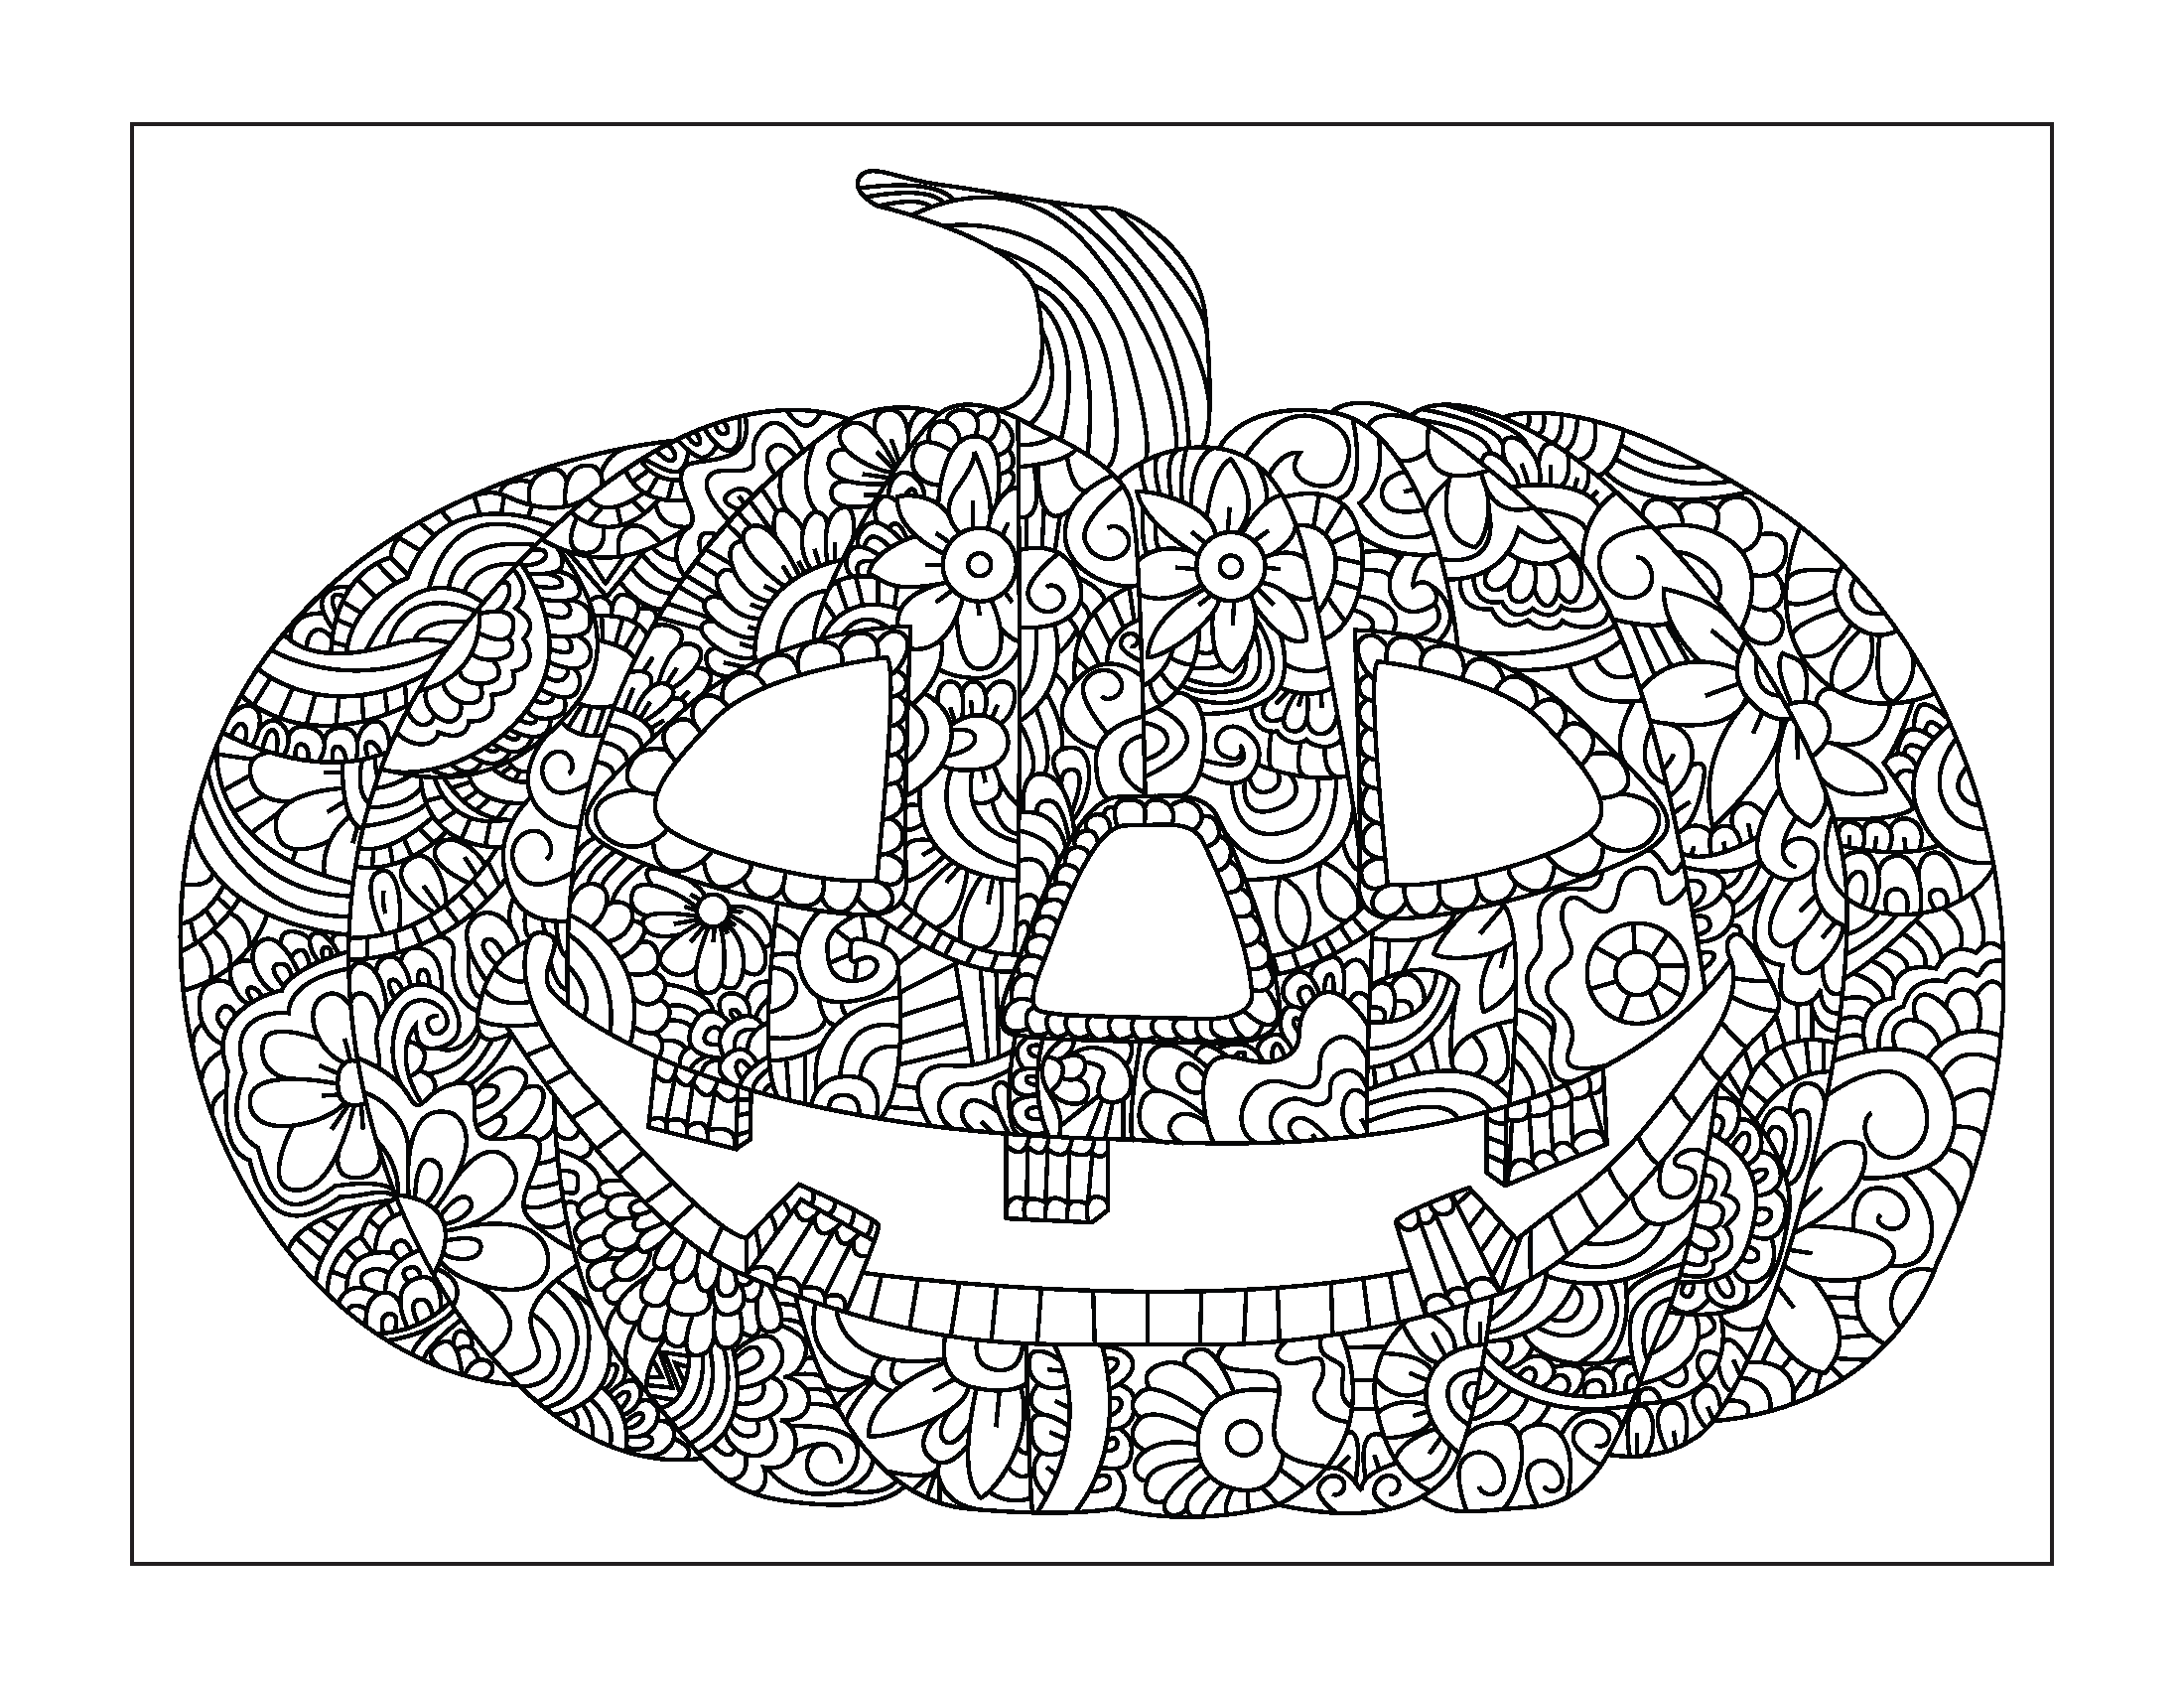 coloring halloween halloween free to color for children halloween kids coloring halloween